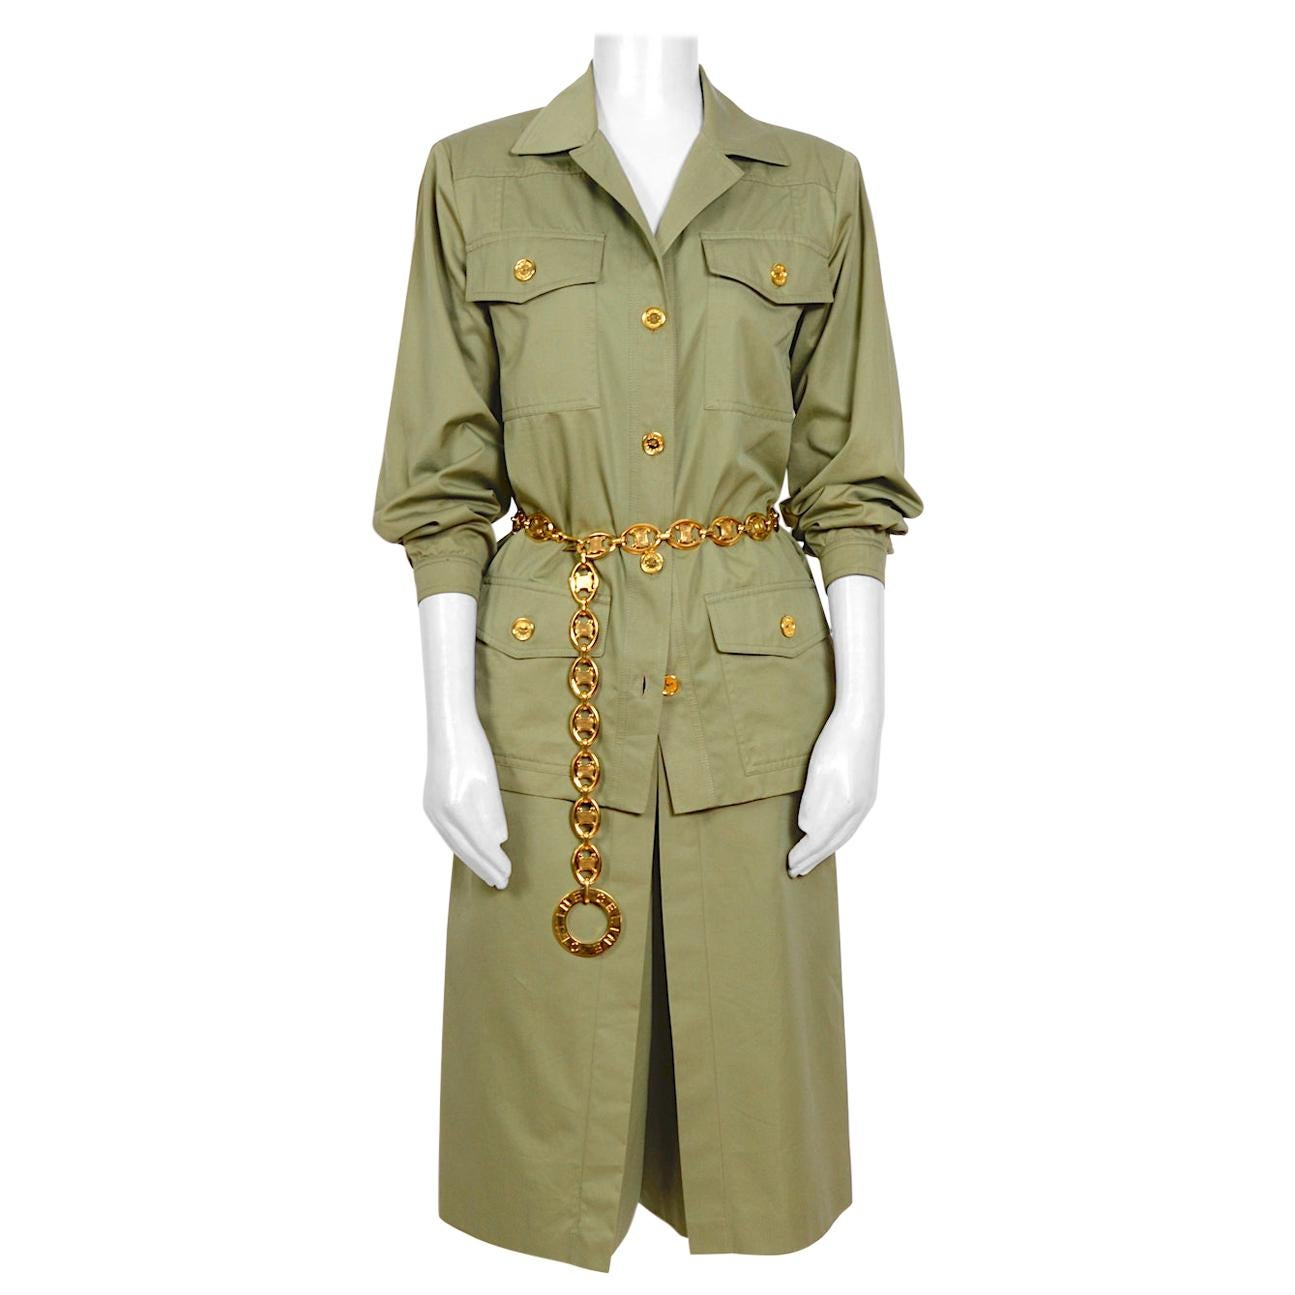 Celine vintage cotton safari style signed gold buttons jacket and skirt suit